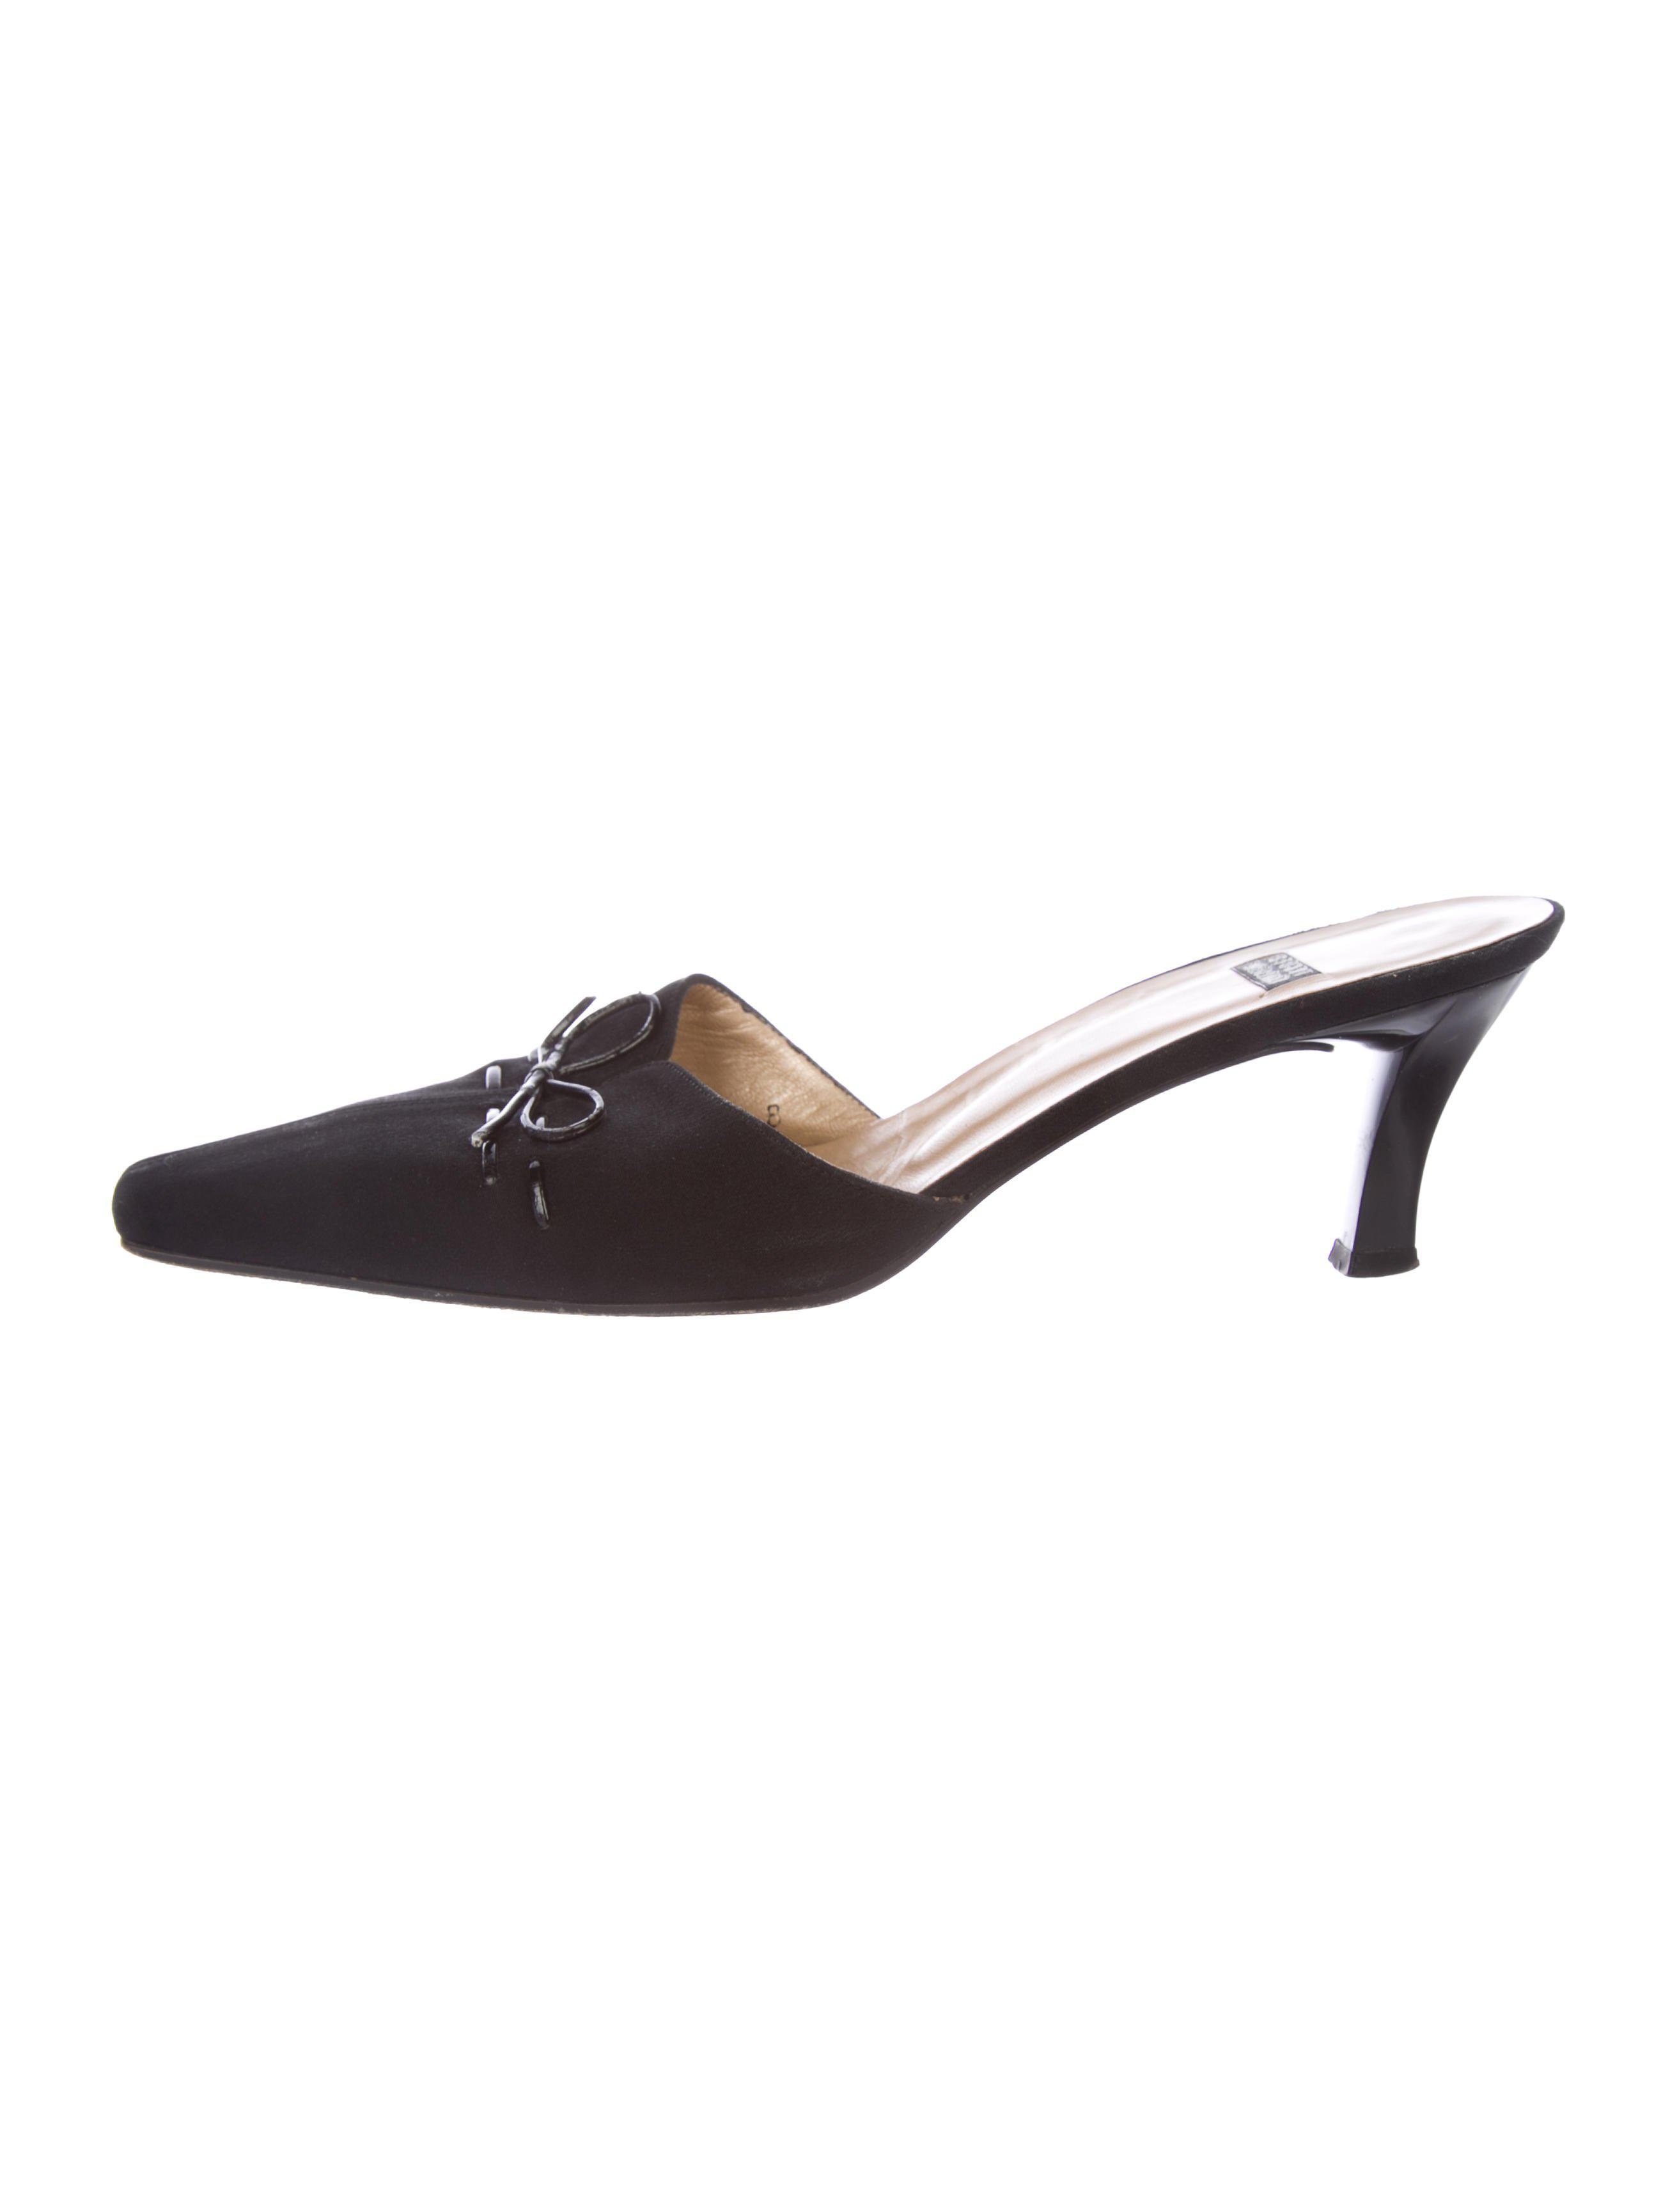 Stuart Weitzman Gloambiance Pointed-Toe Mules countdown package free shipping latest collections big discount txcWL